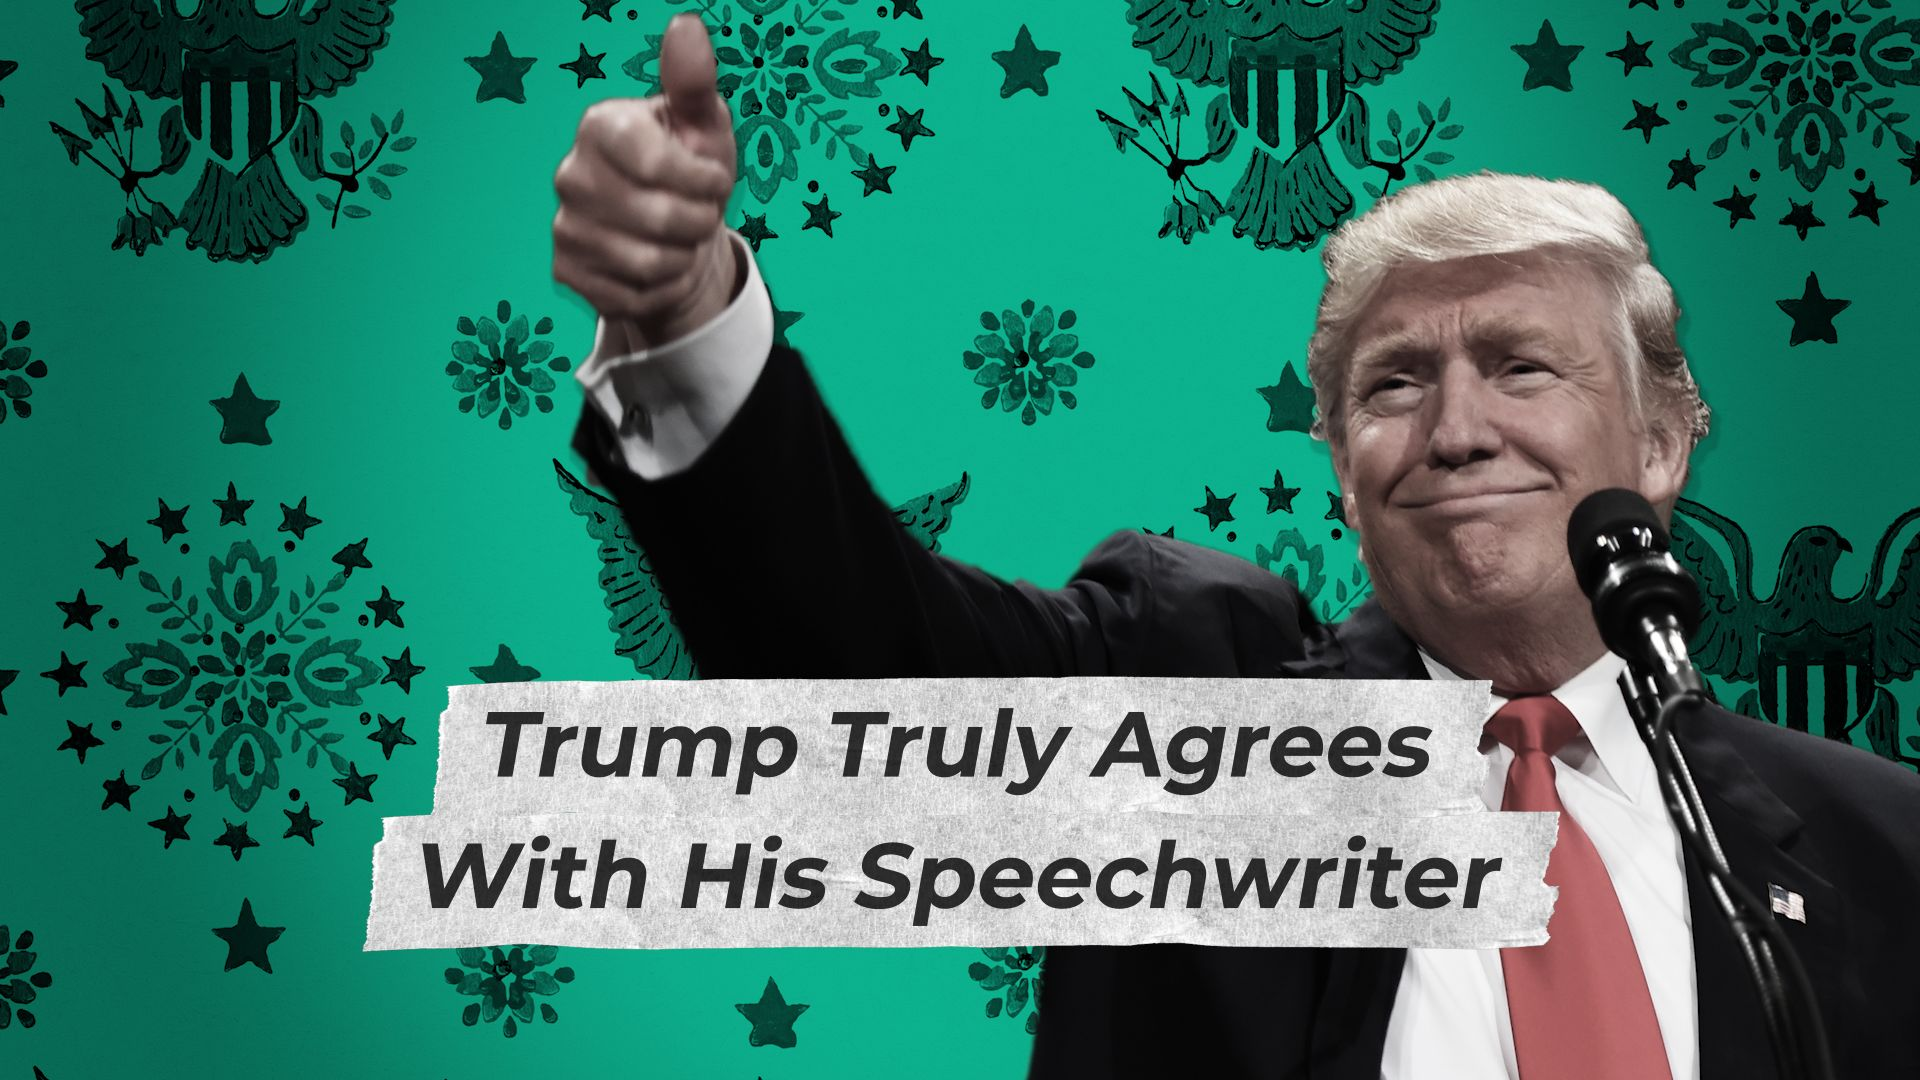 President Trump Really Agrees With His Speechwriters